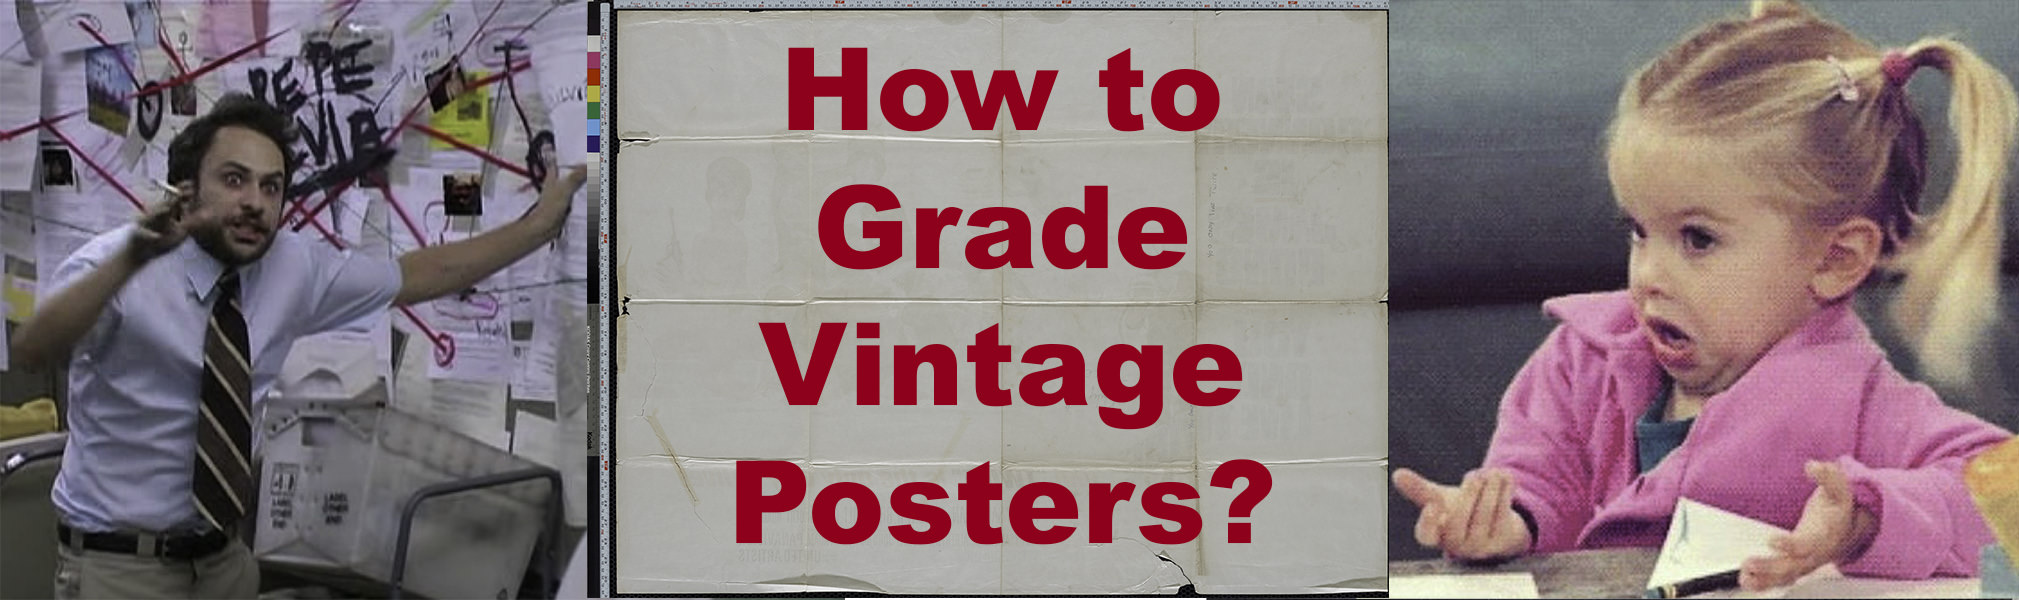 How to Grade Vintage Posters